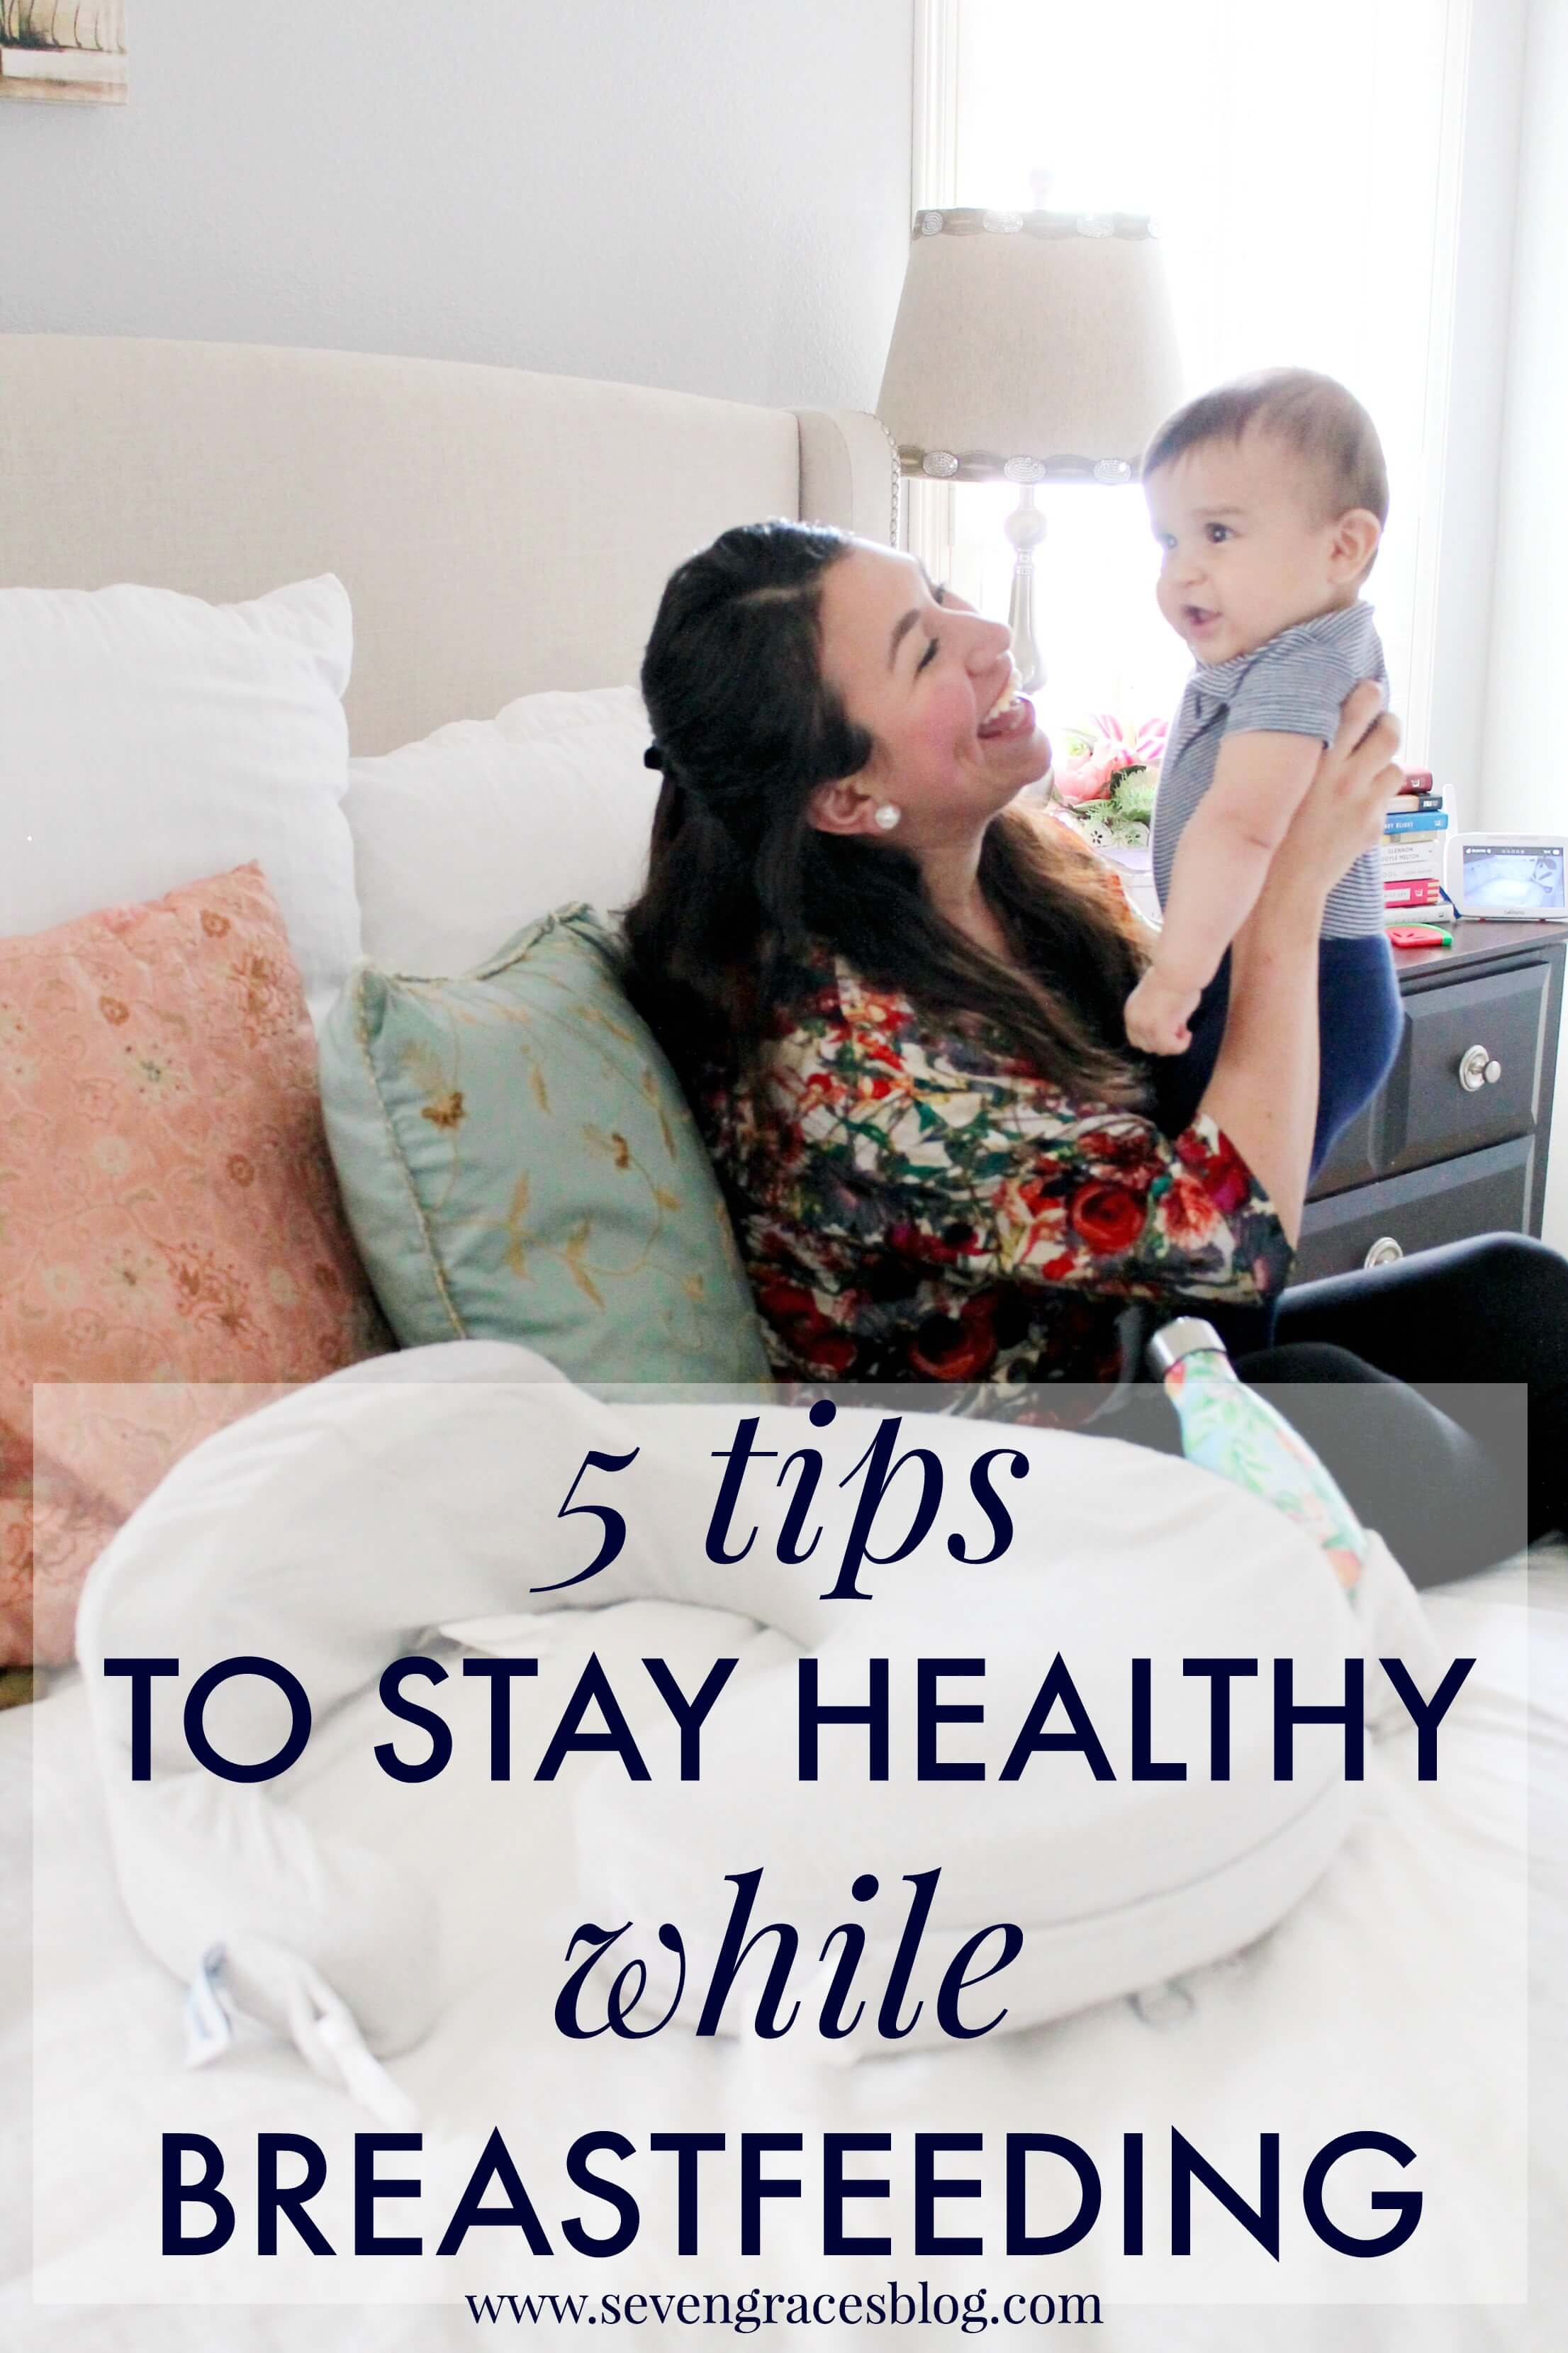 5 Tips to stay healthy while breastfeeding. Practical tips that will help you for the long-haul. Breastfeeding tips you need to know.